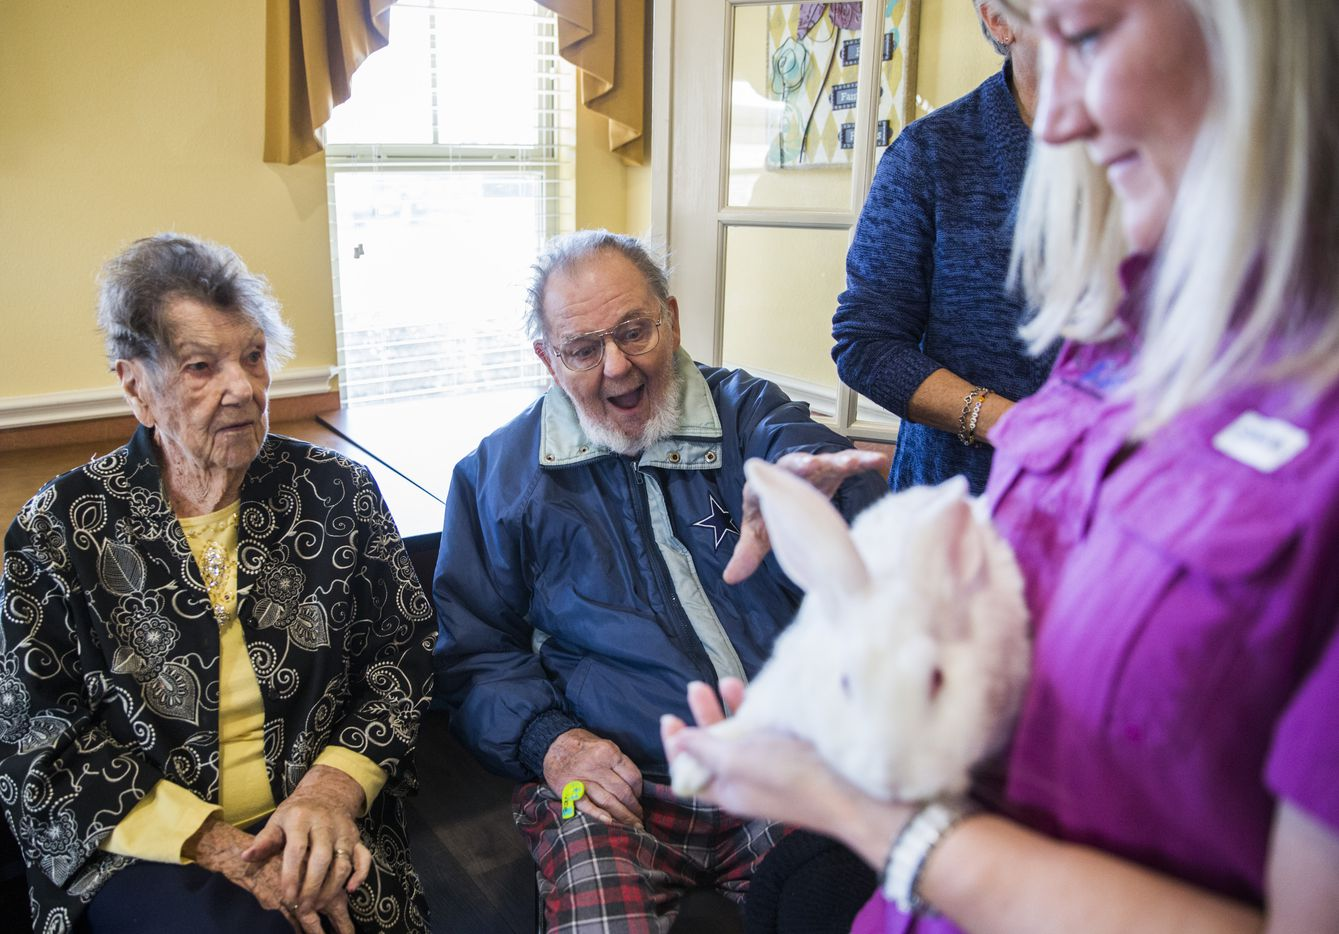 Jerry Holdridge, center, reacts to touching Snow the rabbit as Stacy Danby, right, of ARoo4U takes her around the room at Mustang Creek Estates of Frisco on Friday, January 25, 2019. ARoo4U brought several therapy animals, including a kangaroo, to visit the residents. At left is Geraldine Webb. (Ashley Landis/The Dallas Morning News)